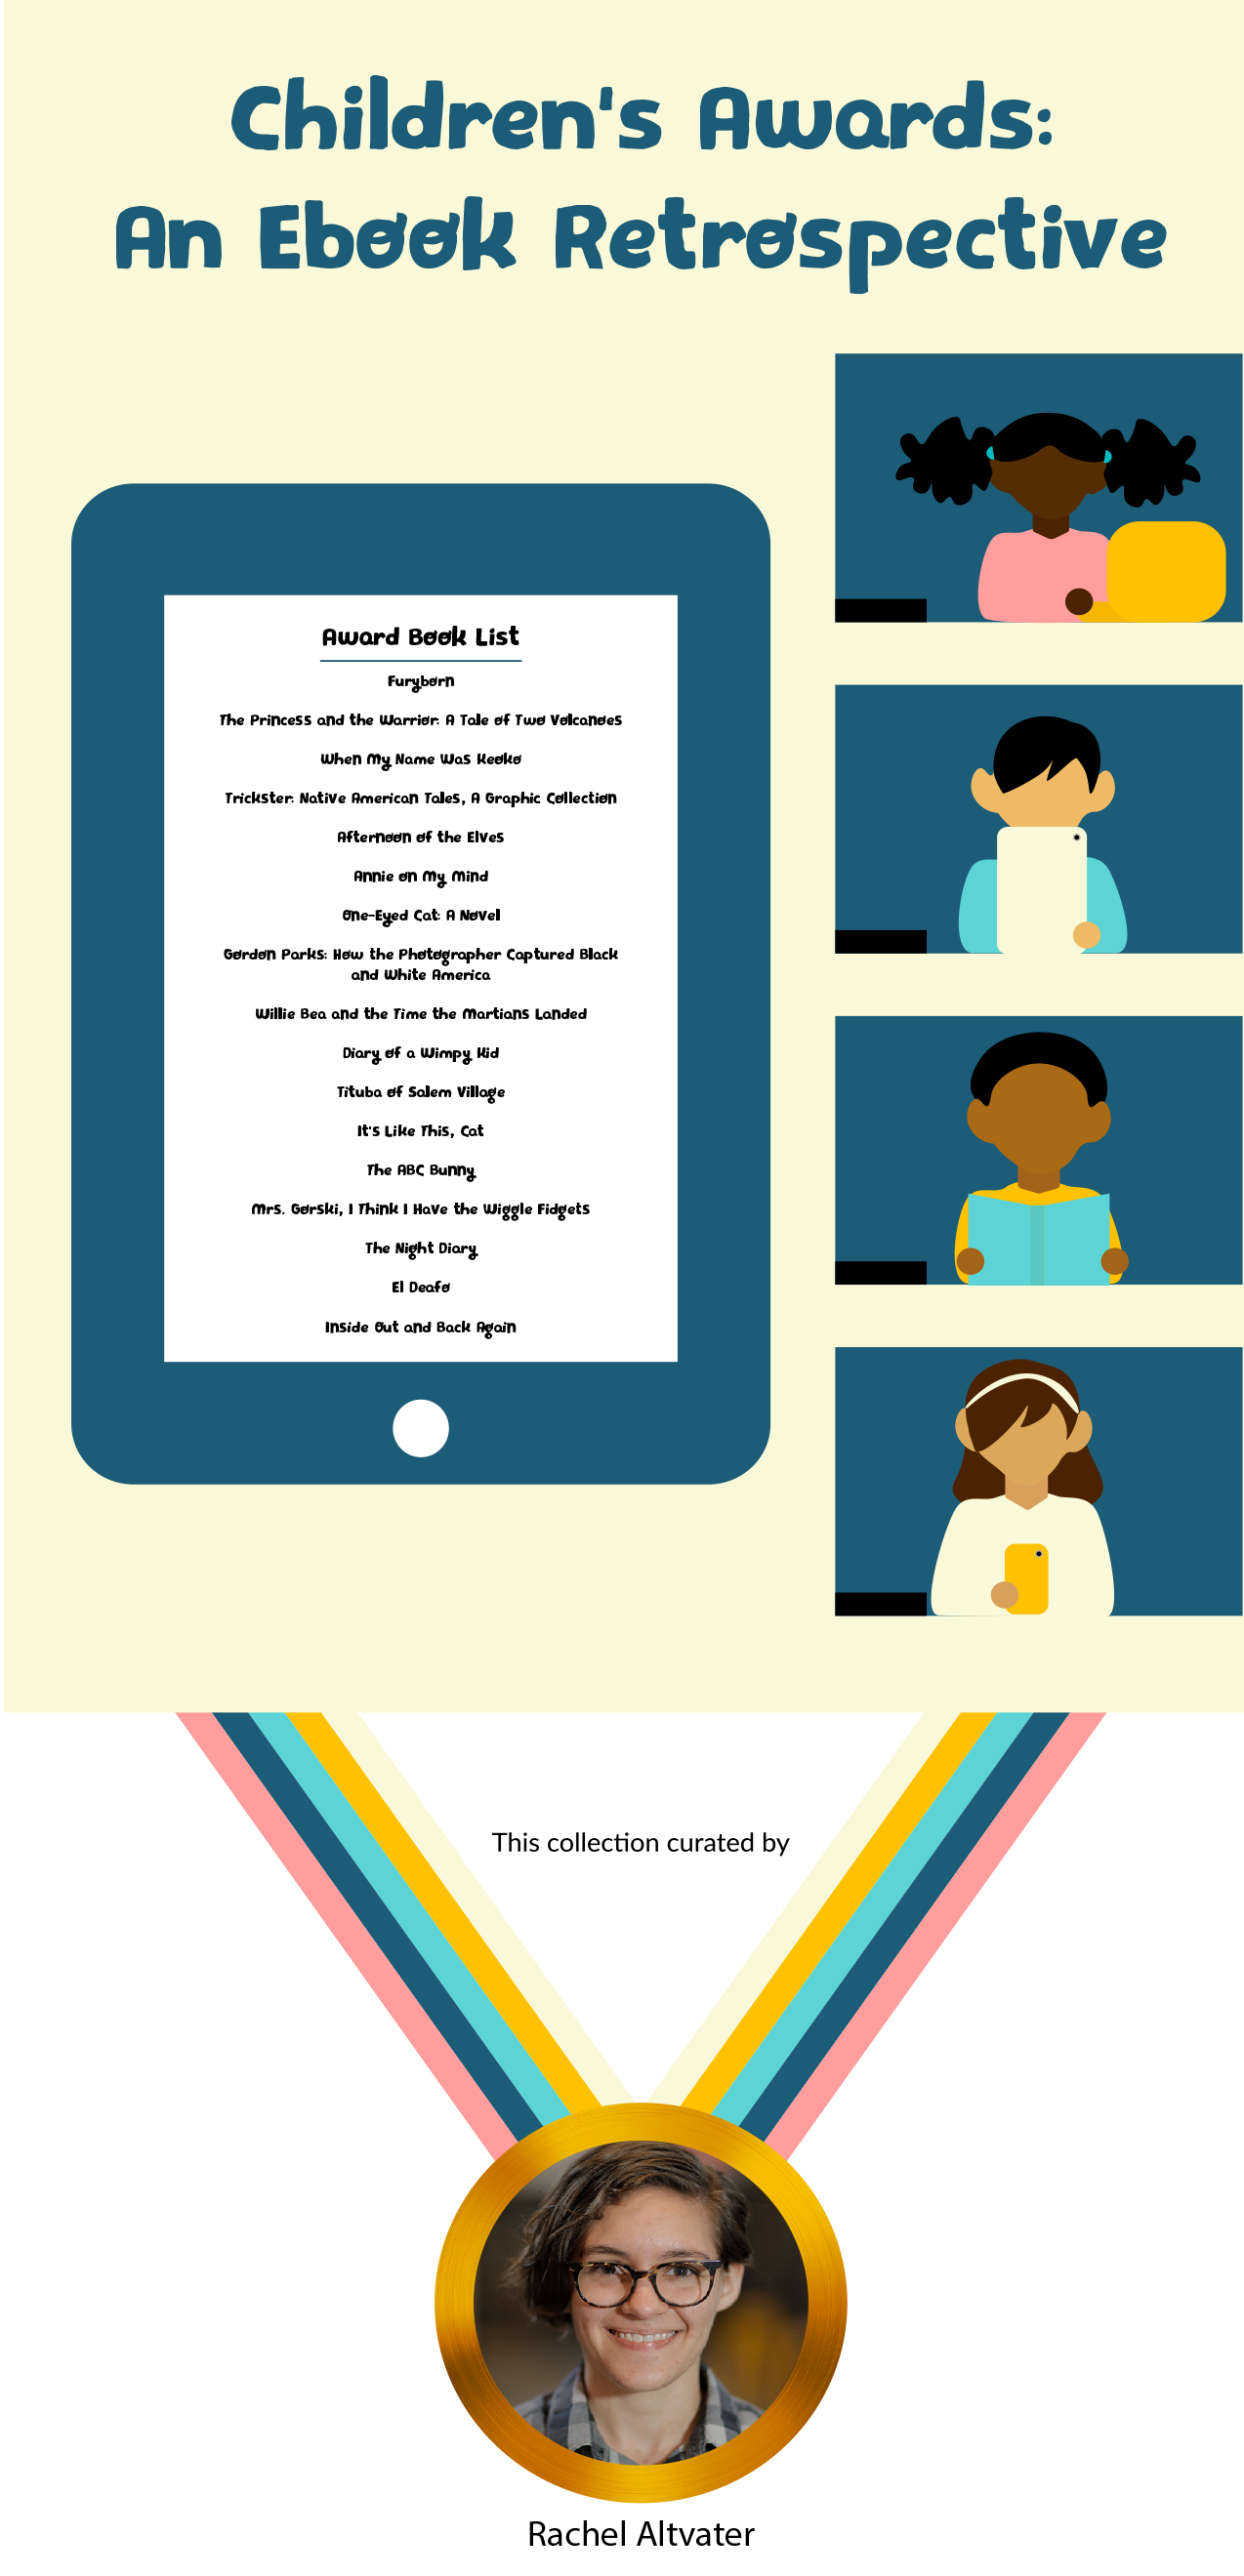 Children's Awards: An Ebook Retrospective, ethnically disverse children using different reading devices in four different zoom windows